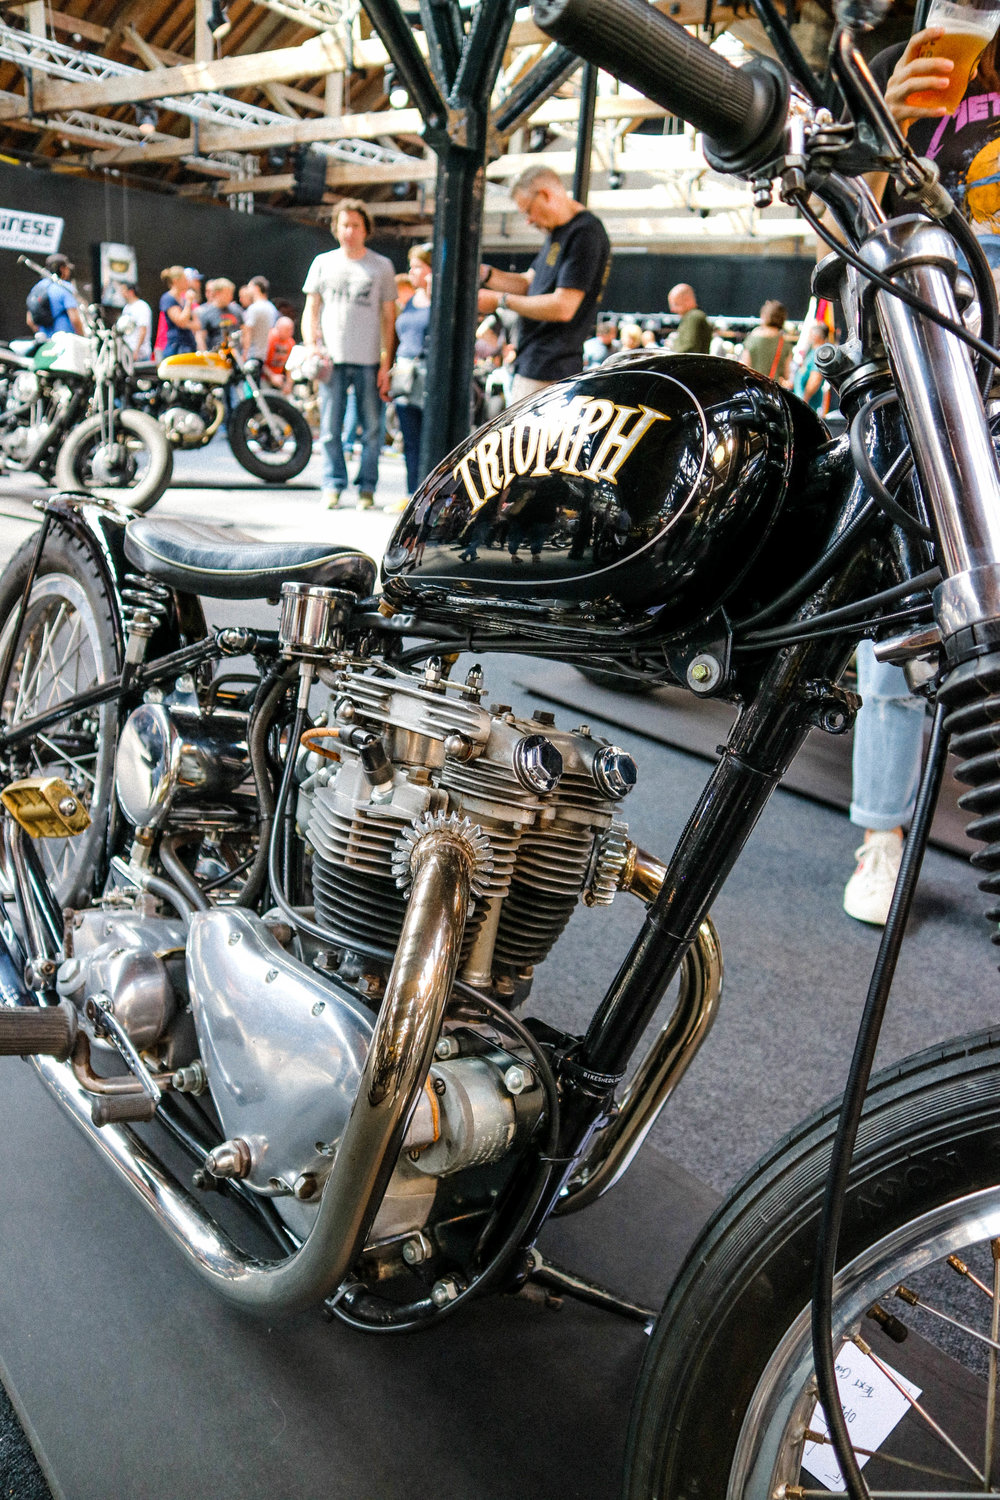 BIKE_SHED_2018_by_SANDERGEE (78 of 78).jpg